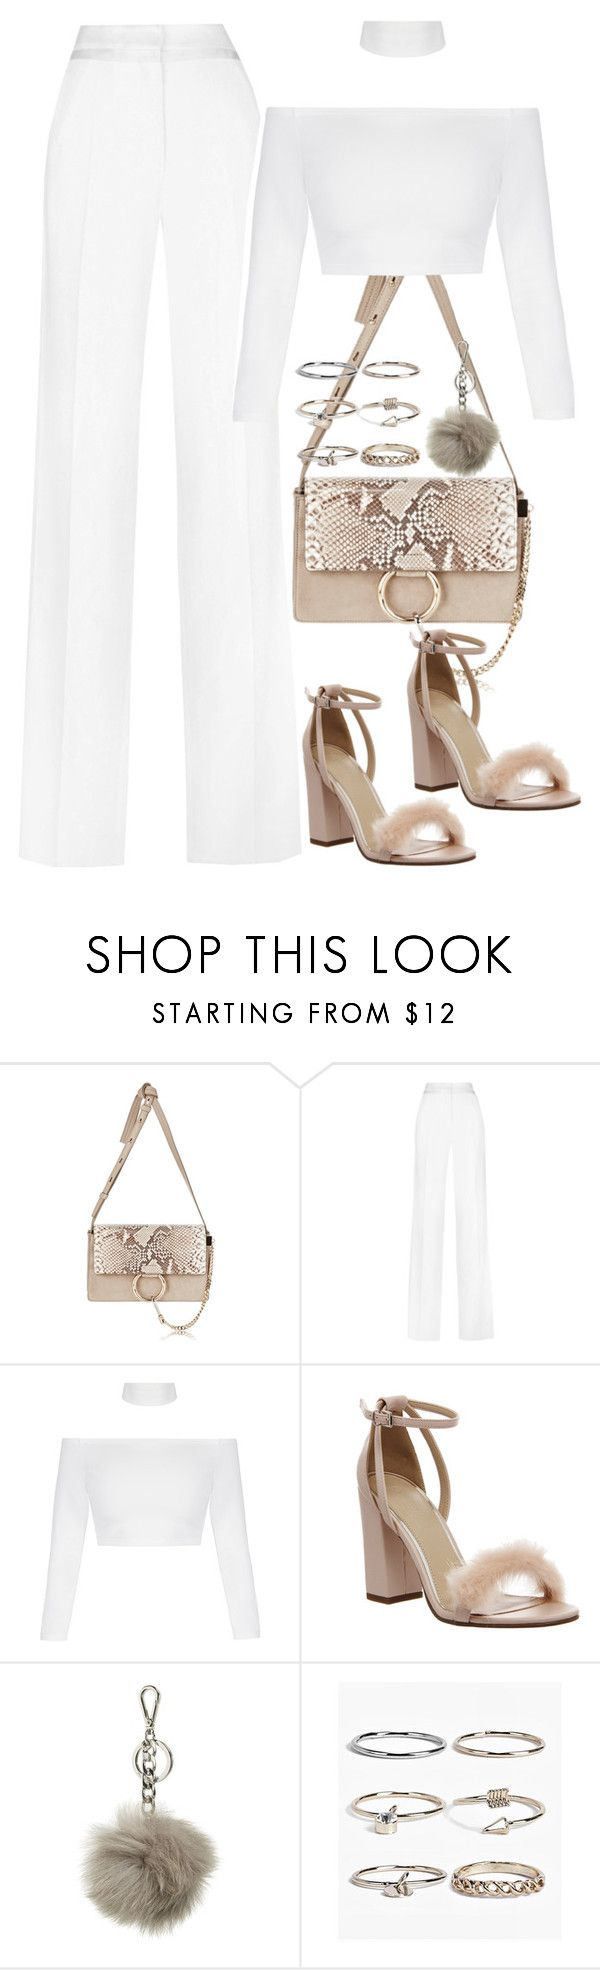 """Untitled #3923"" by amyn99 ❤ liked on Polyvore featuring Chloé, Thierry Mugler, Office, MICHAEL Michael Kors and Boohoo"